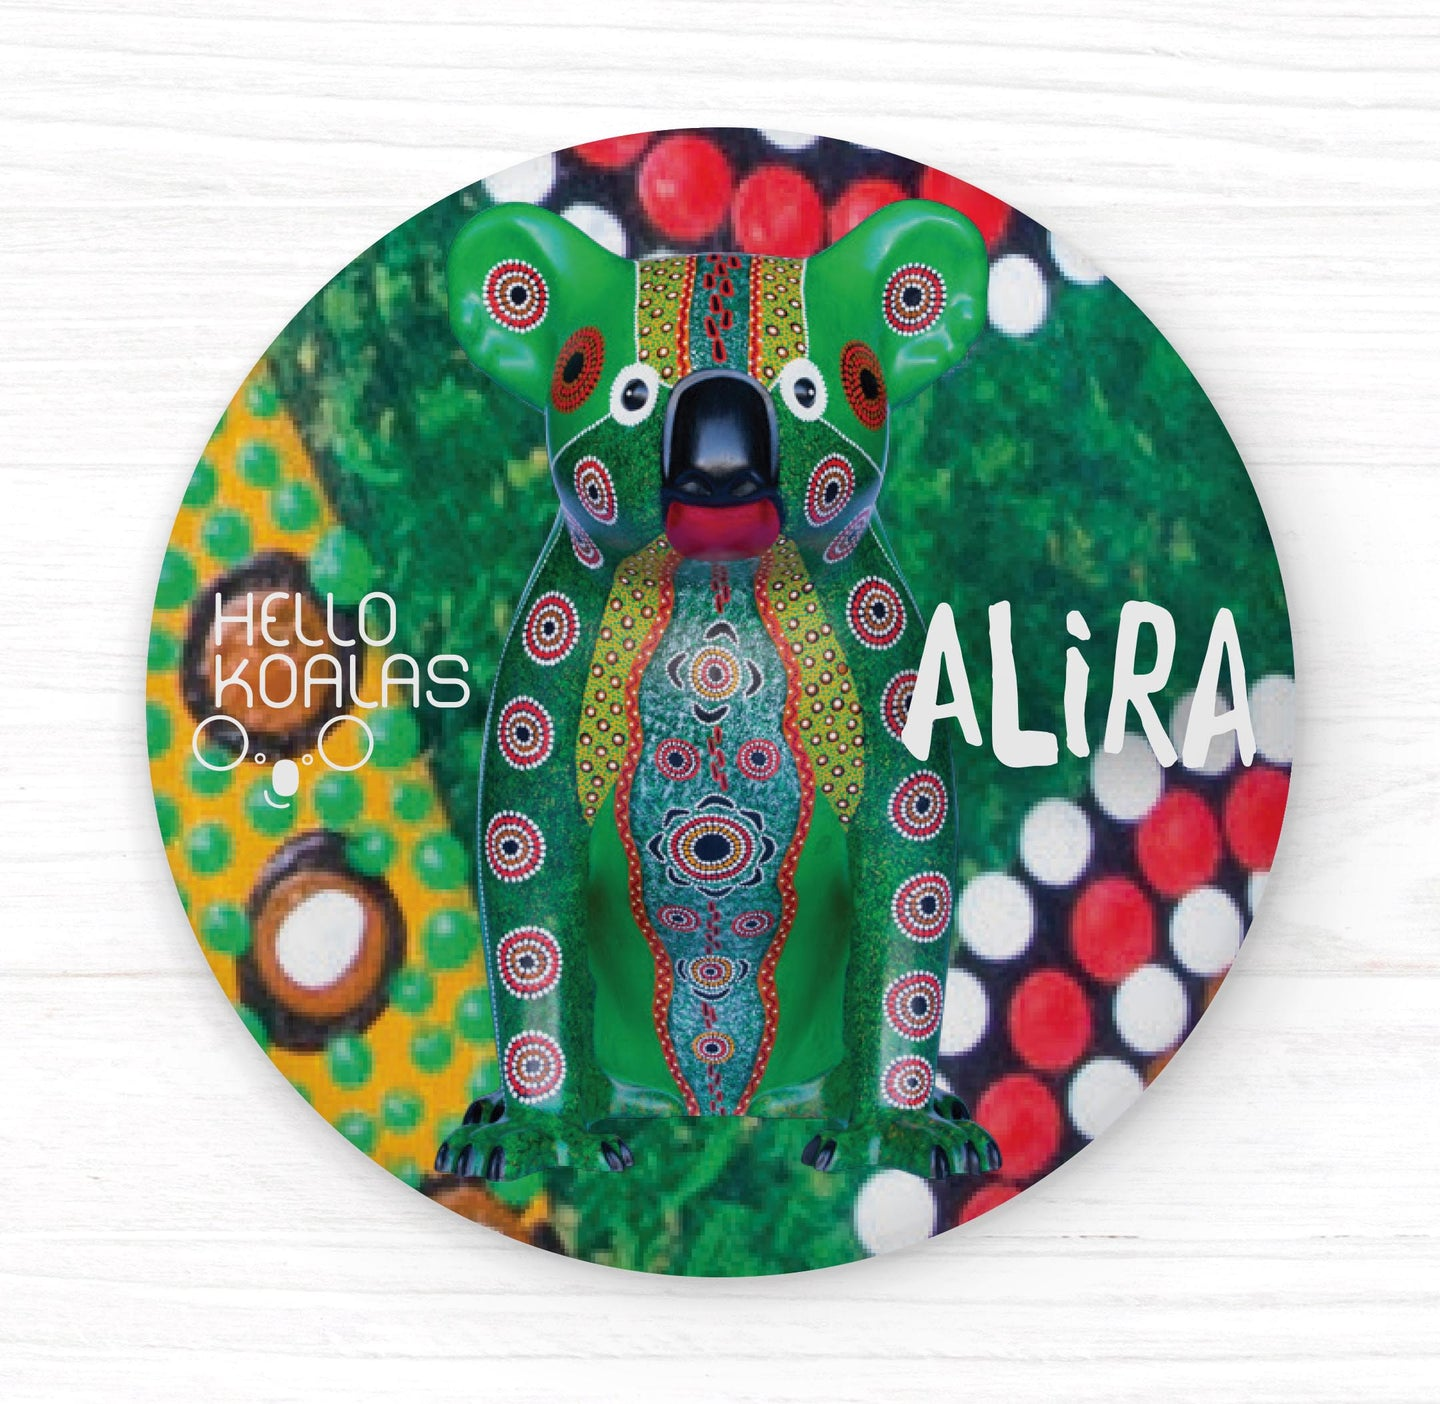 Hello Koalas Alira Badge